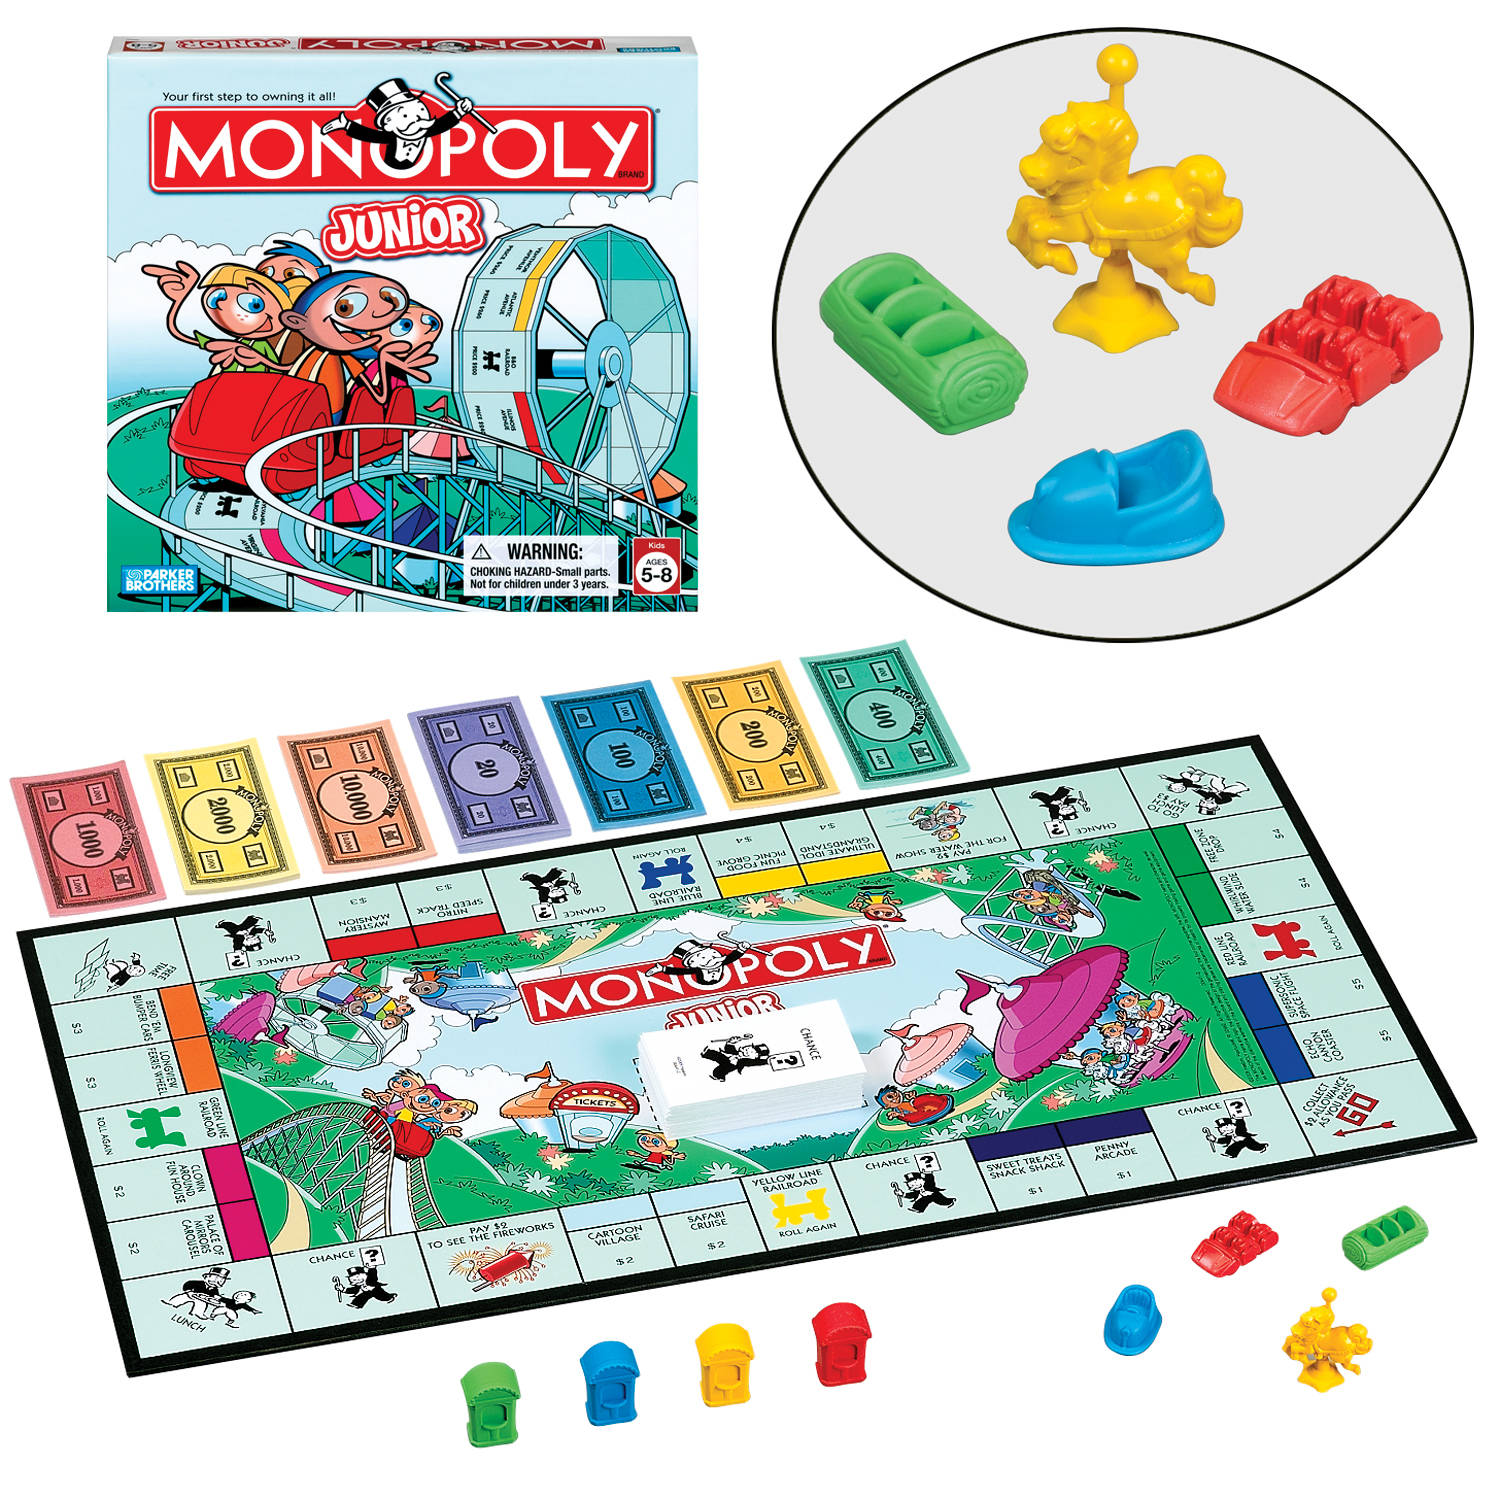 What I Do More Monopoly